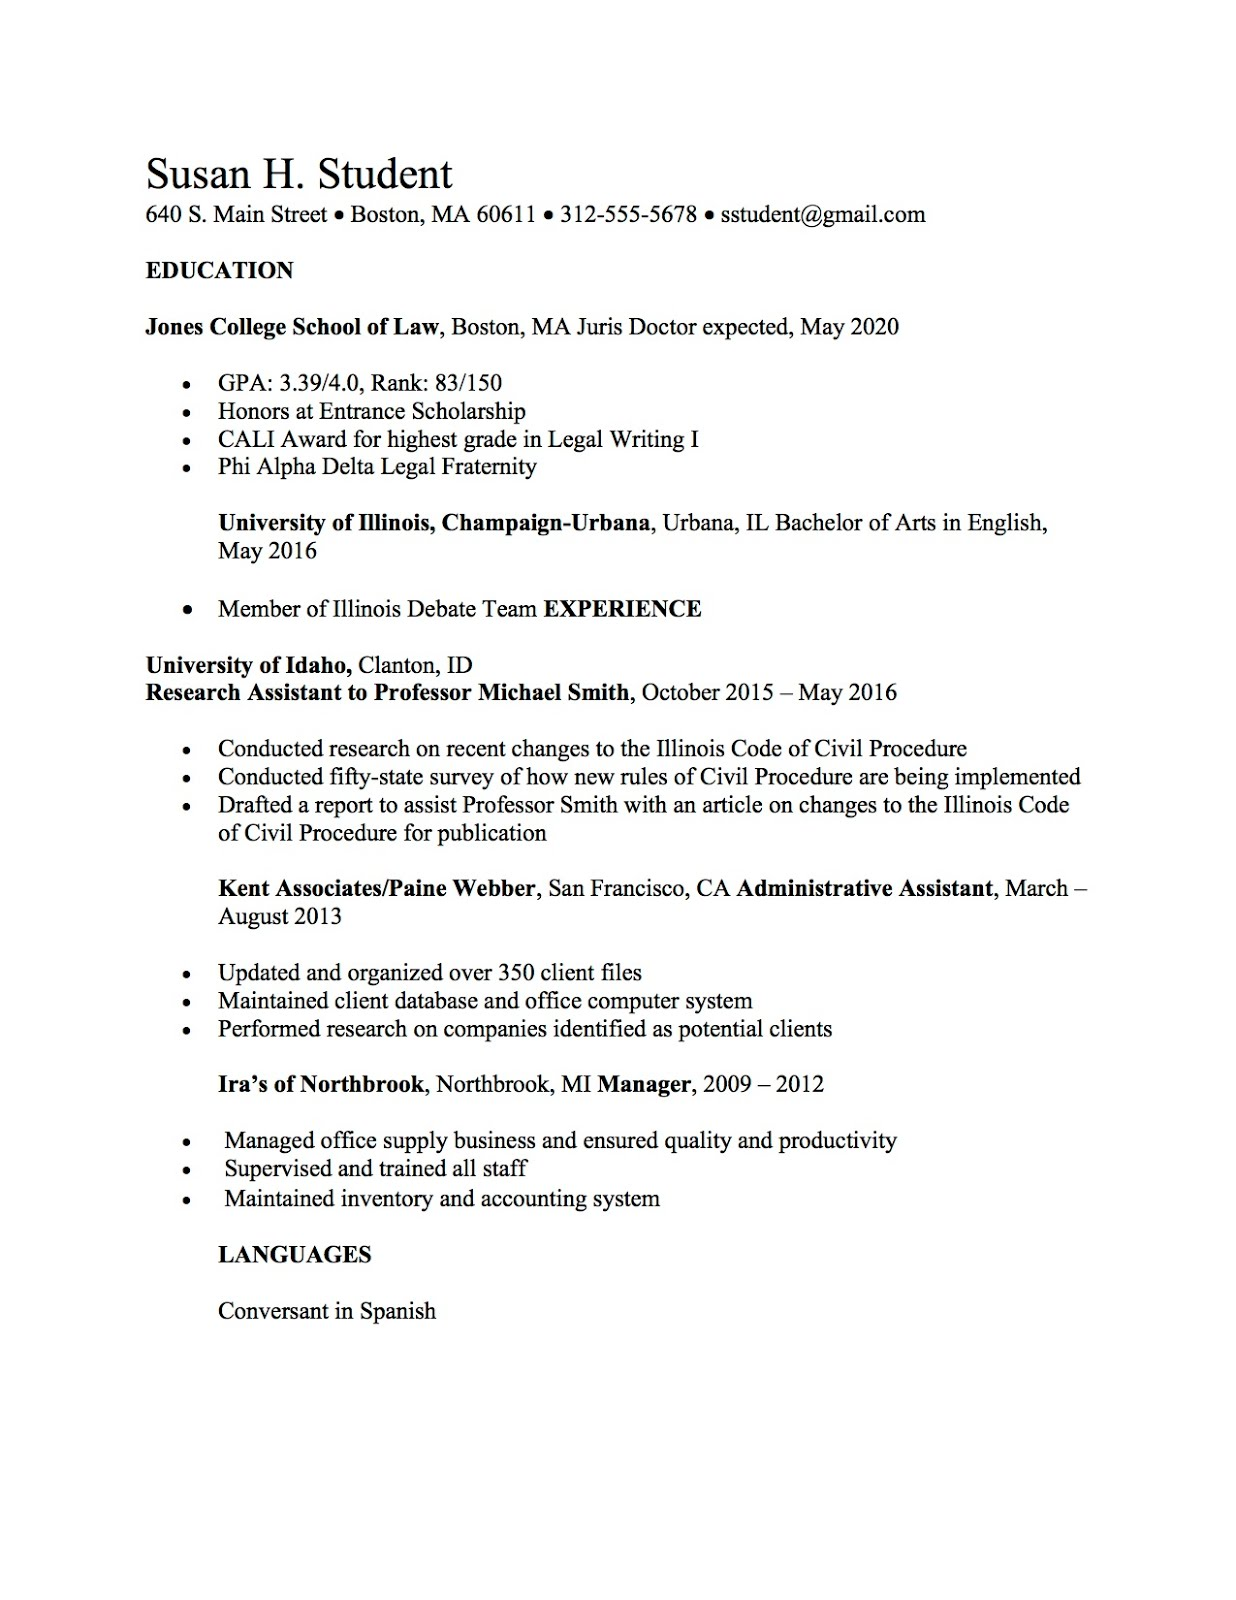 Law School Resume Templates And Samples - Law-school-resume-template